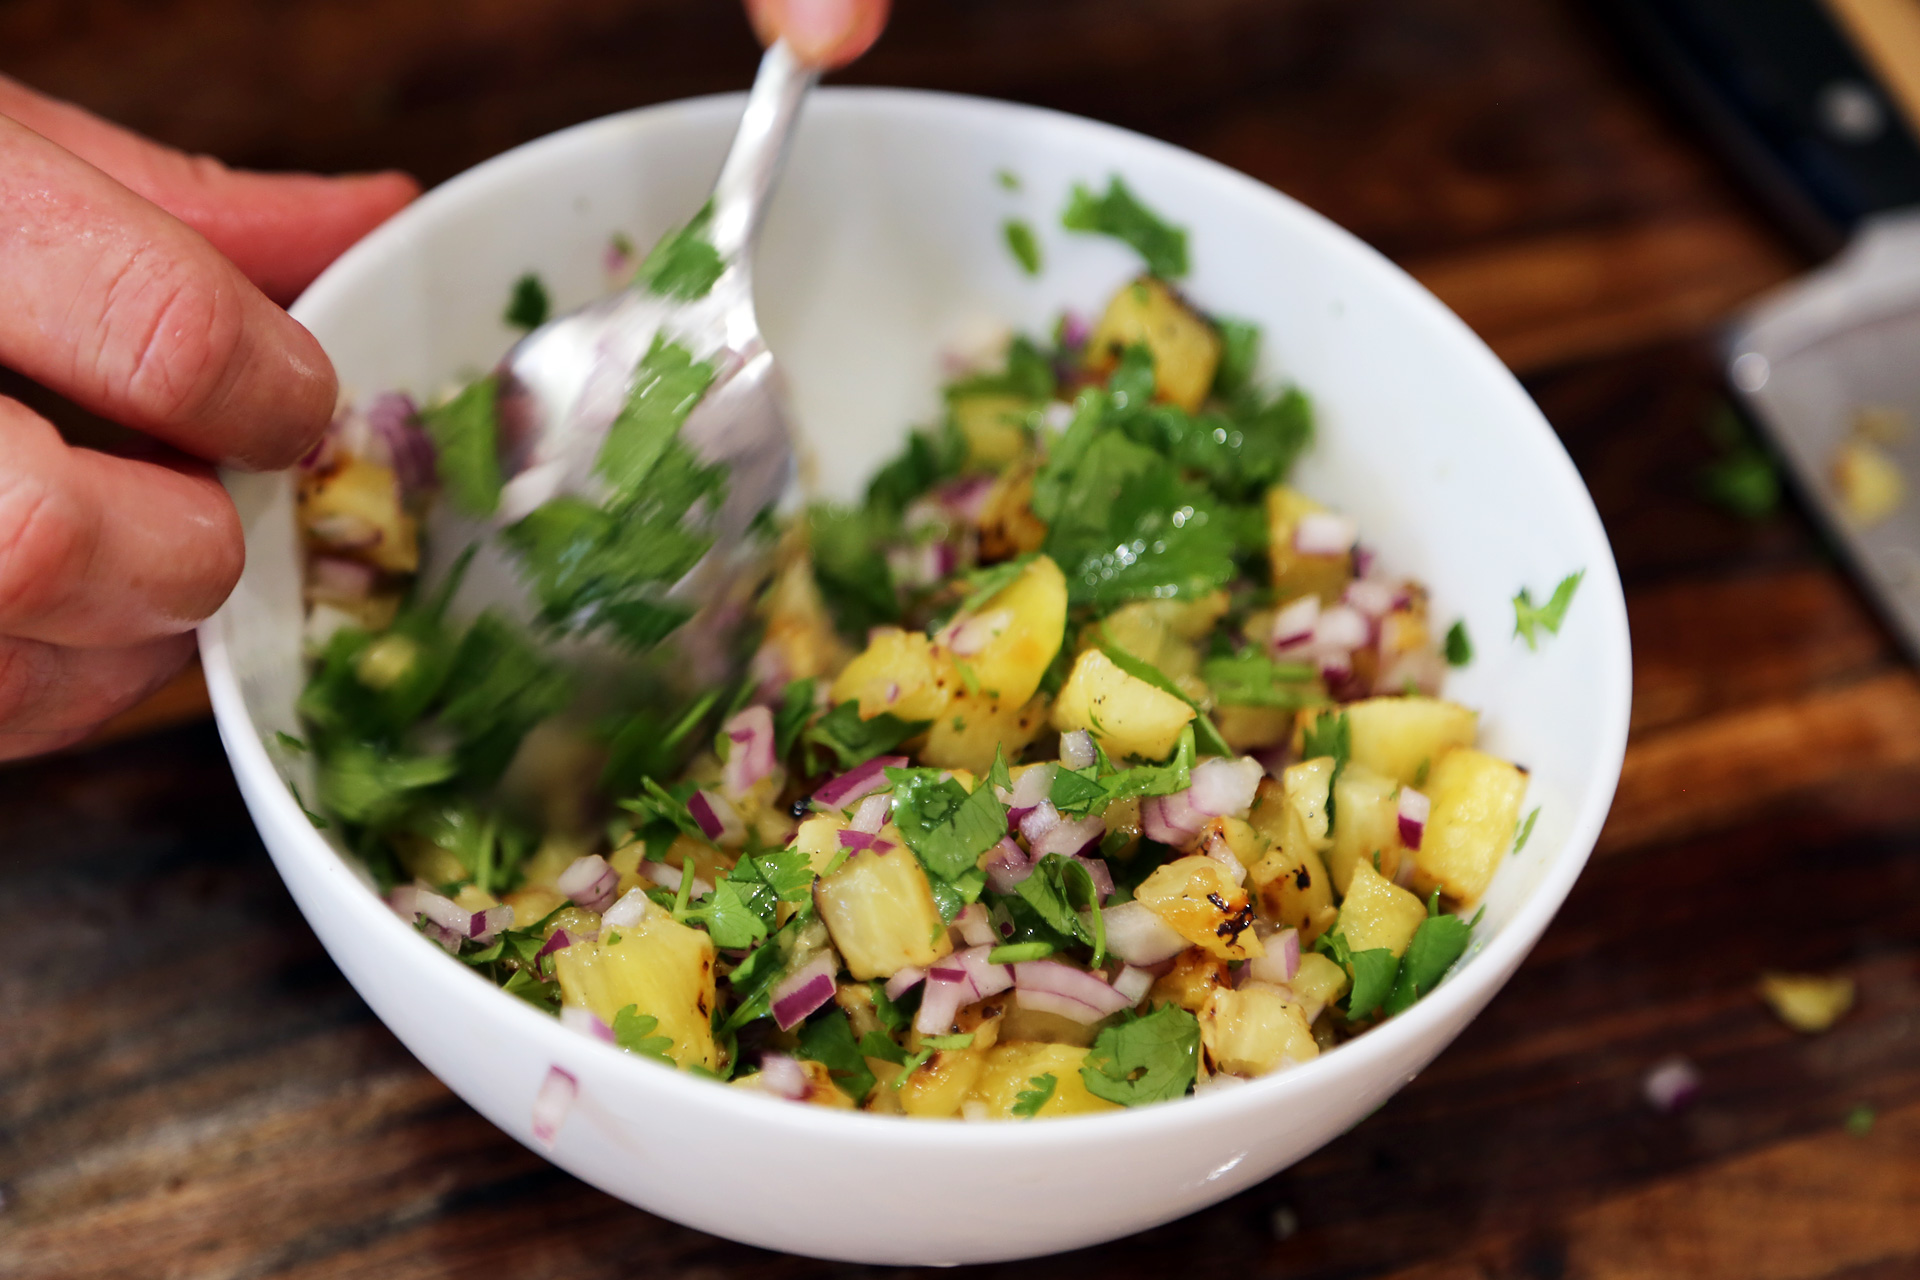 Toss pineapple with the red onion, cilantro, jalapeno if using, and lime juice and set aside.